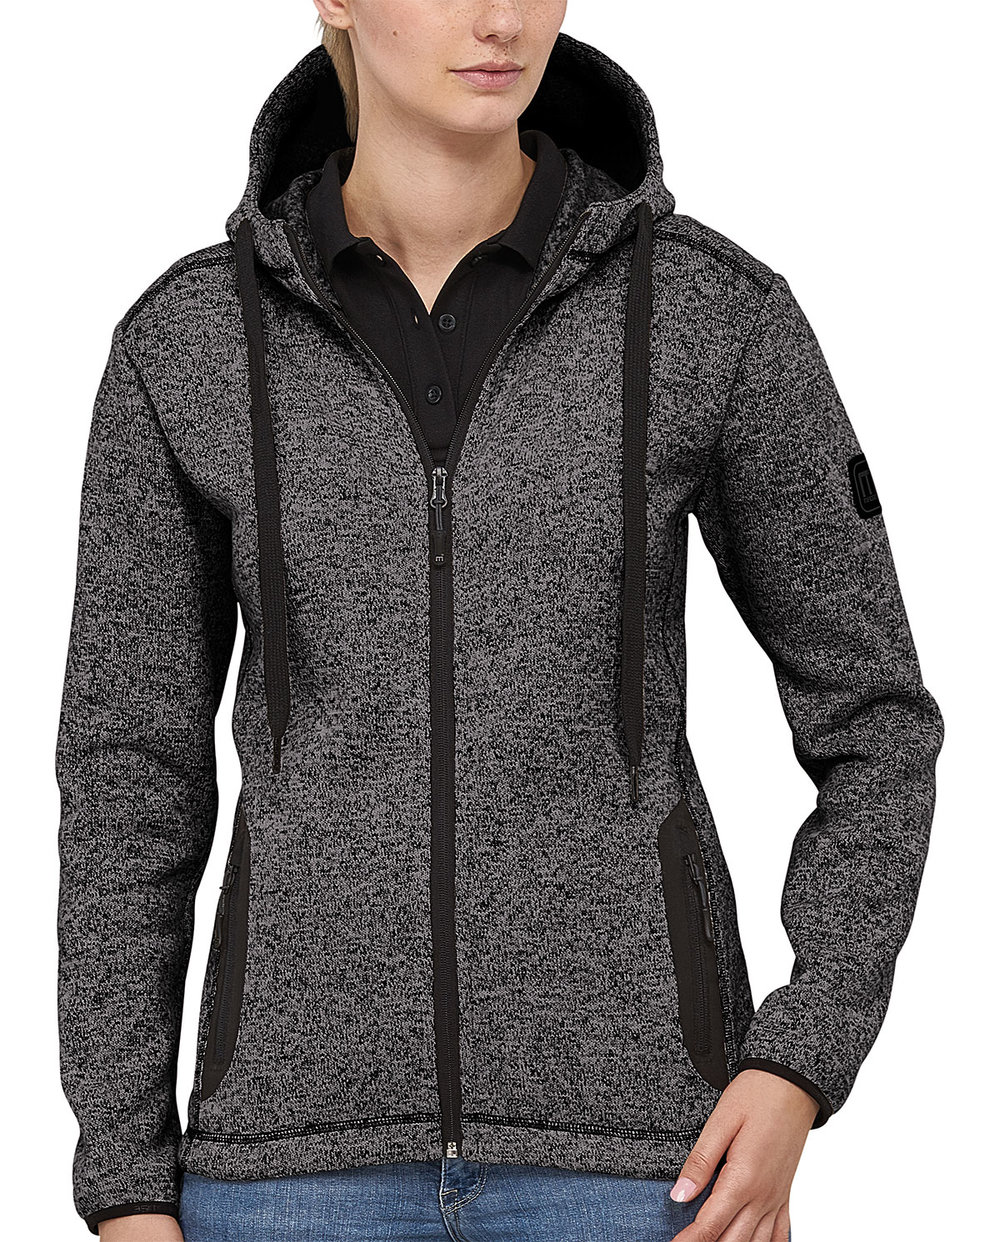 RIPTIDE LIGHT HOODED BREATHABLE-KNIT TOP FEMALE MACBLACK/MACGREY MELANGE